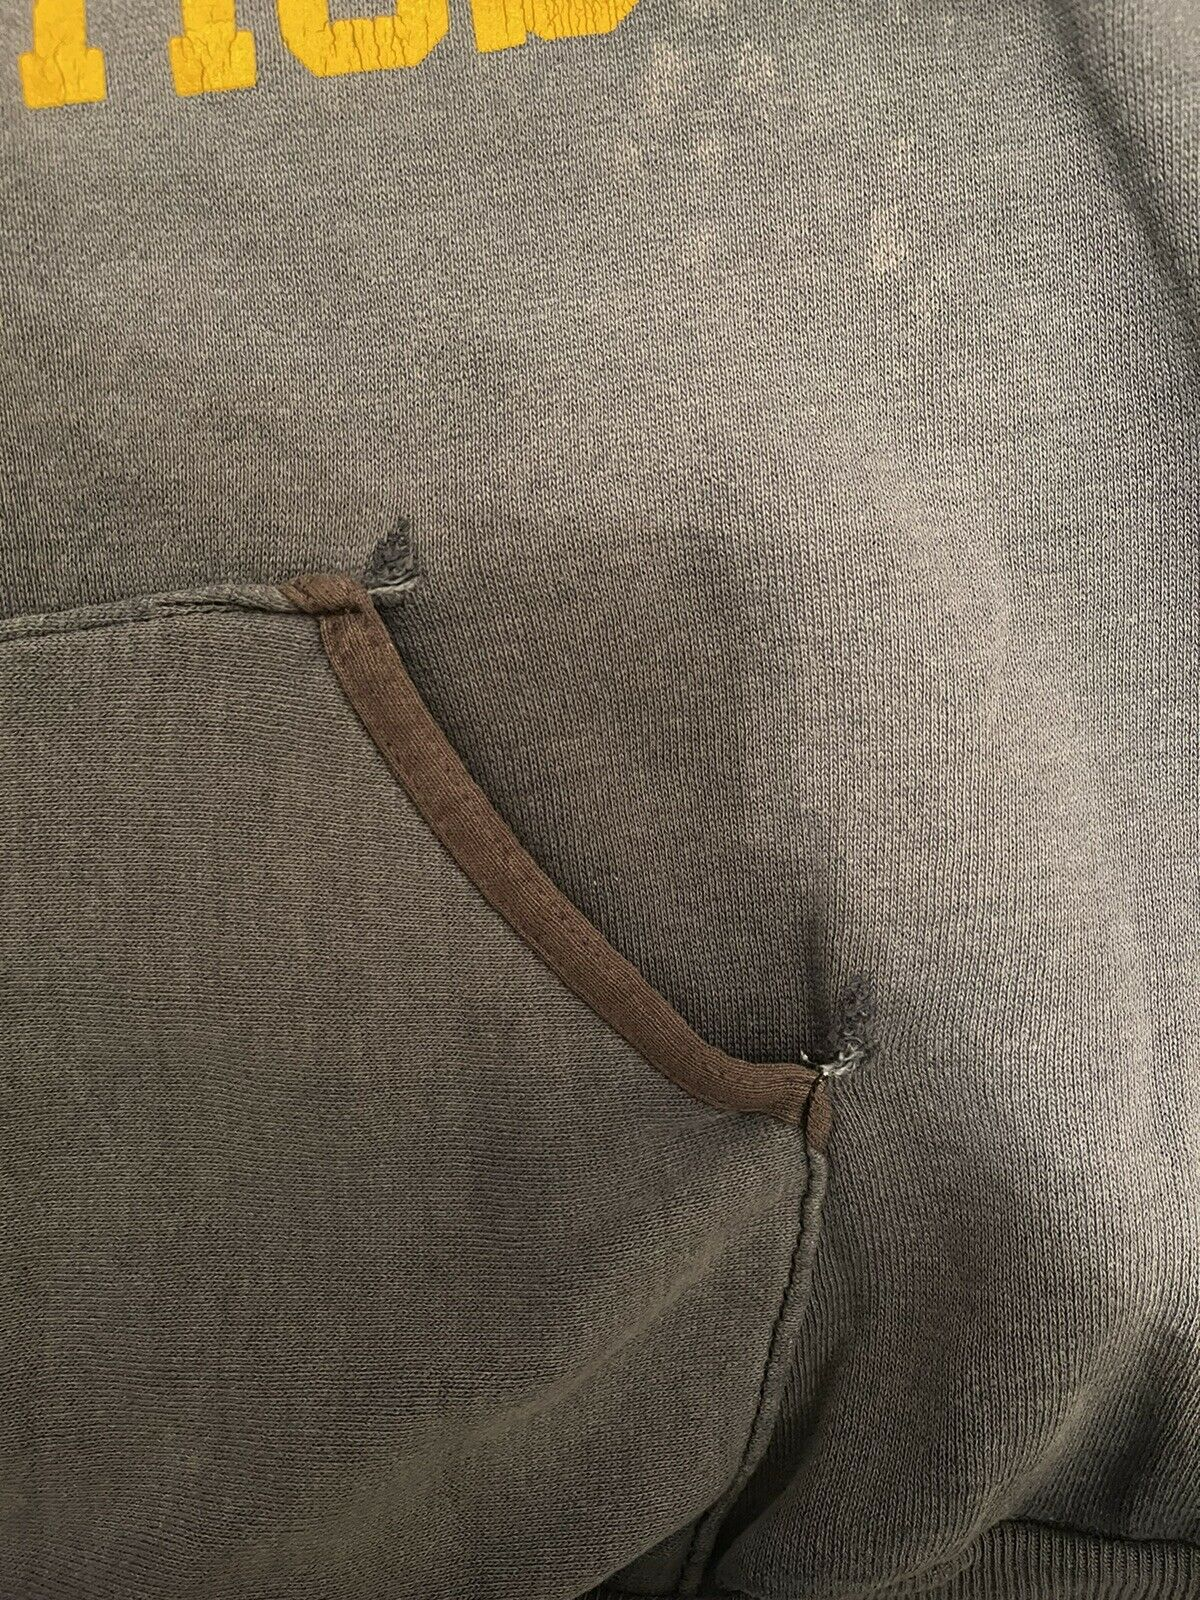 VTG 70s Sun Faded Russell Gold Tag M Hoodie Sweat… - image 9